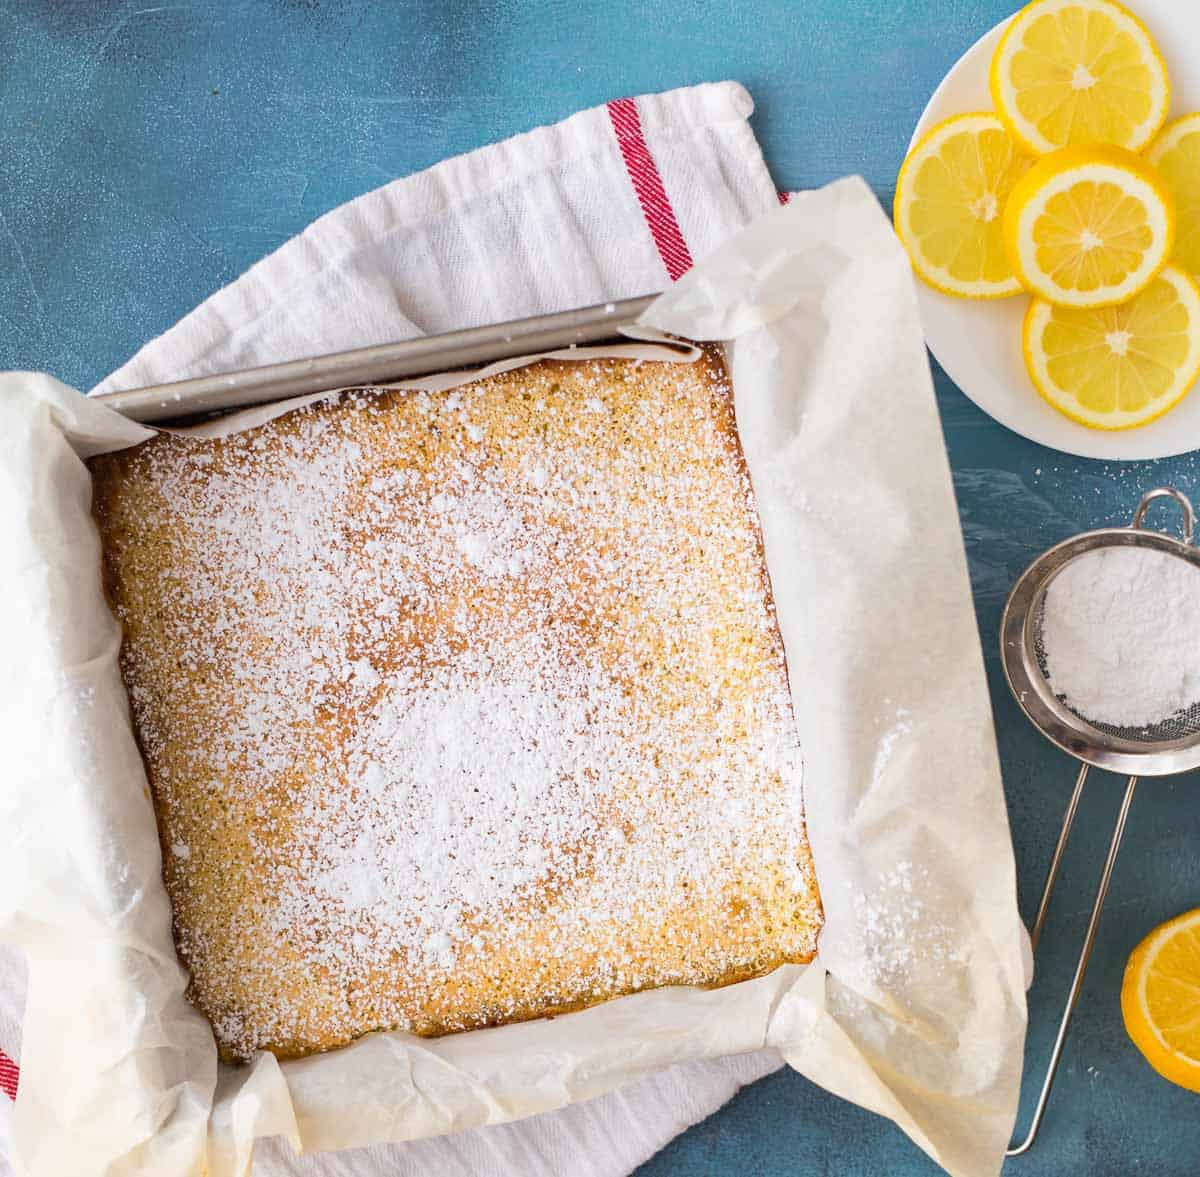 The best lemon bars baked in a square pan dusted with powdered sugar on a blue background